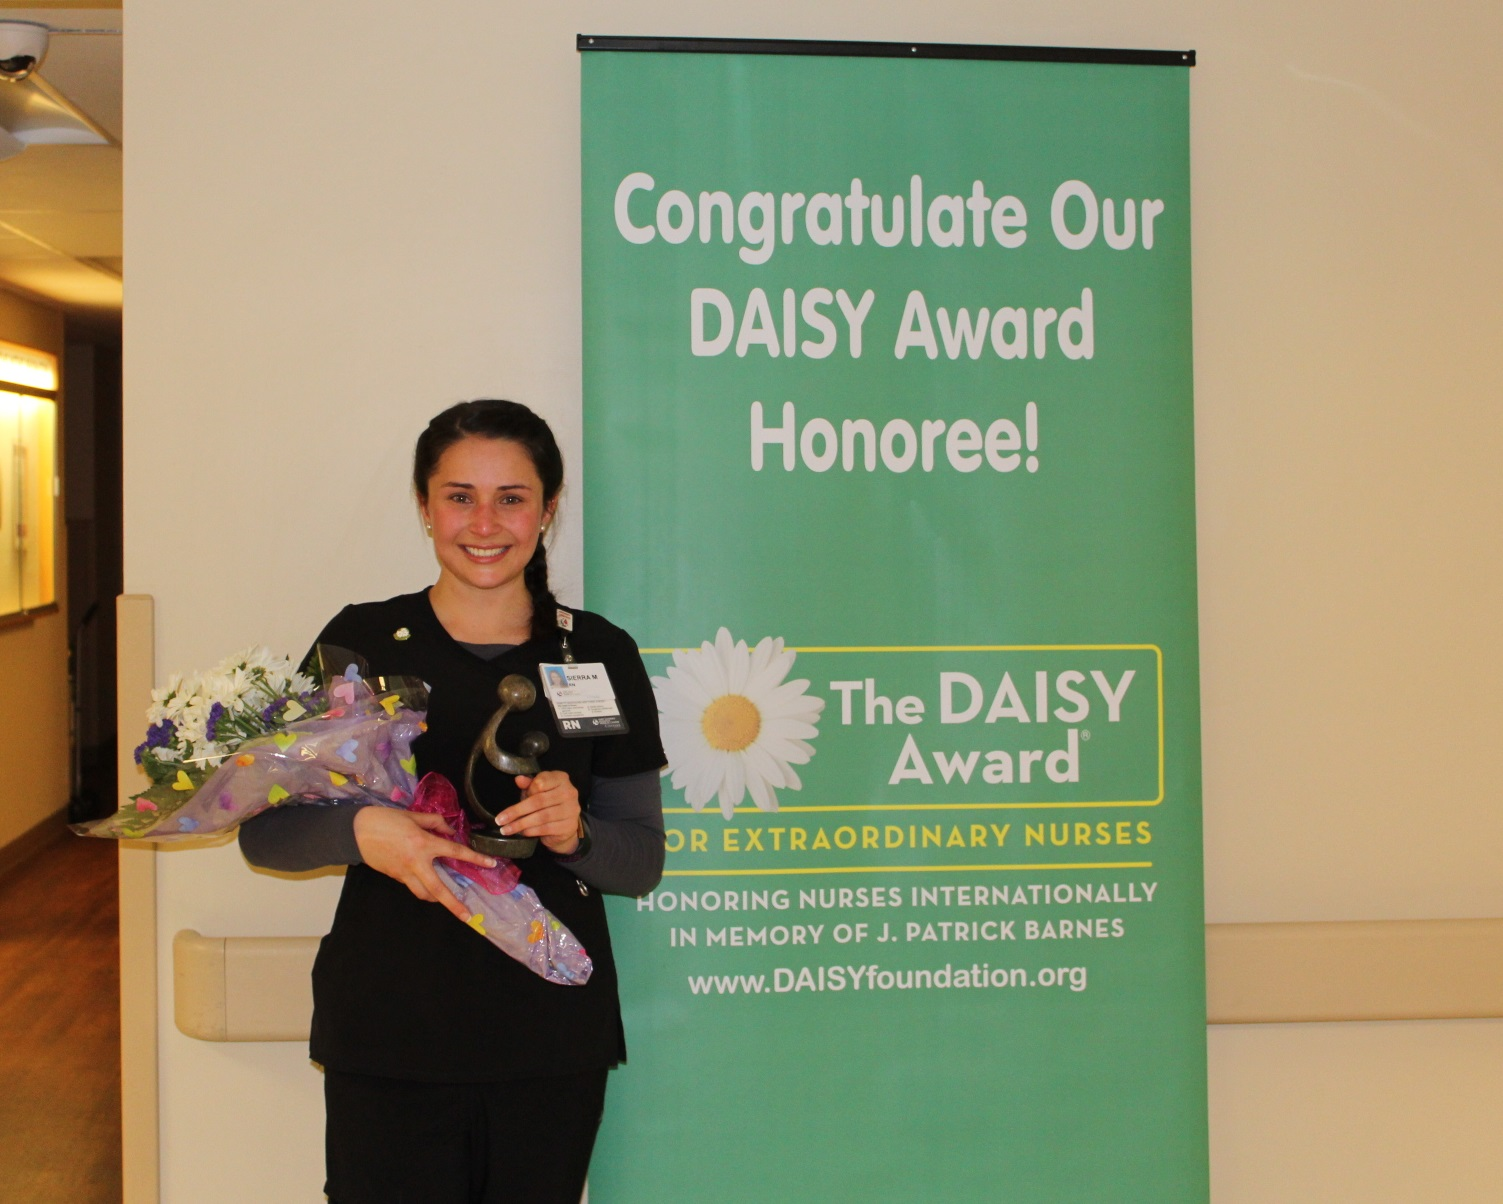 Sierra McAllister, a nurse in the emergency department, is the recipient of our February DAISY Award.